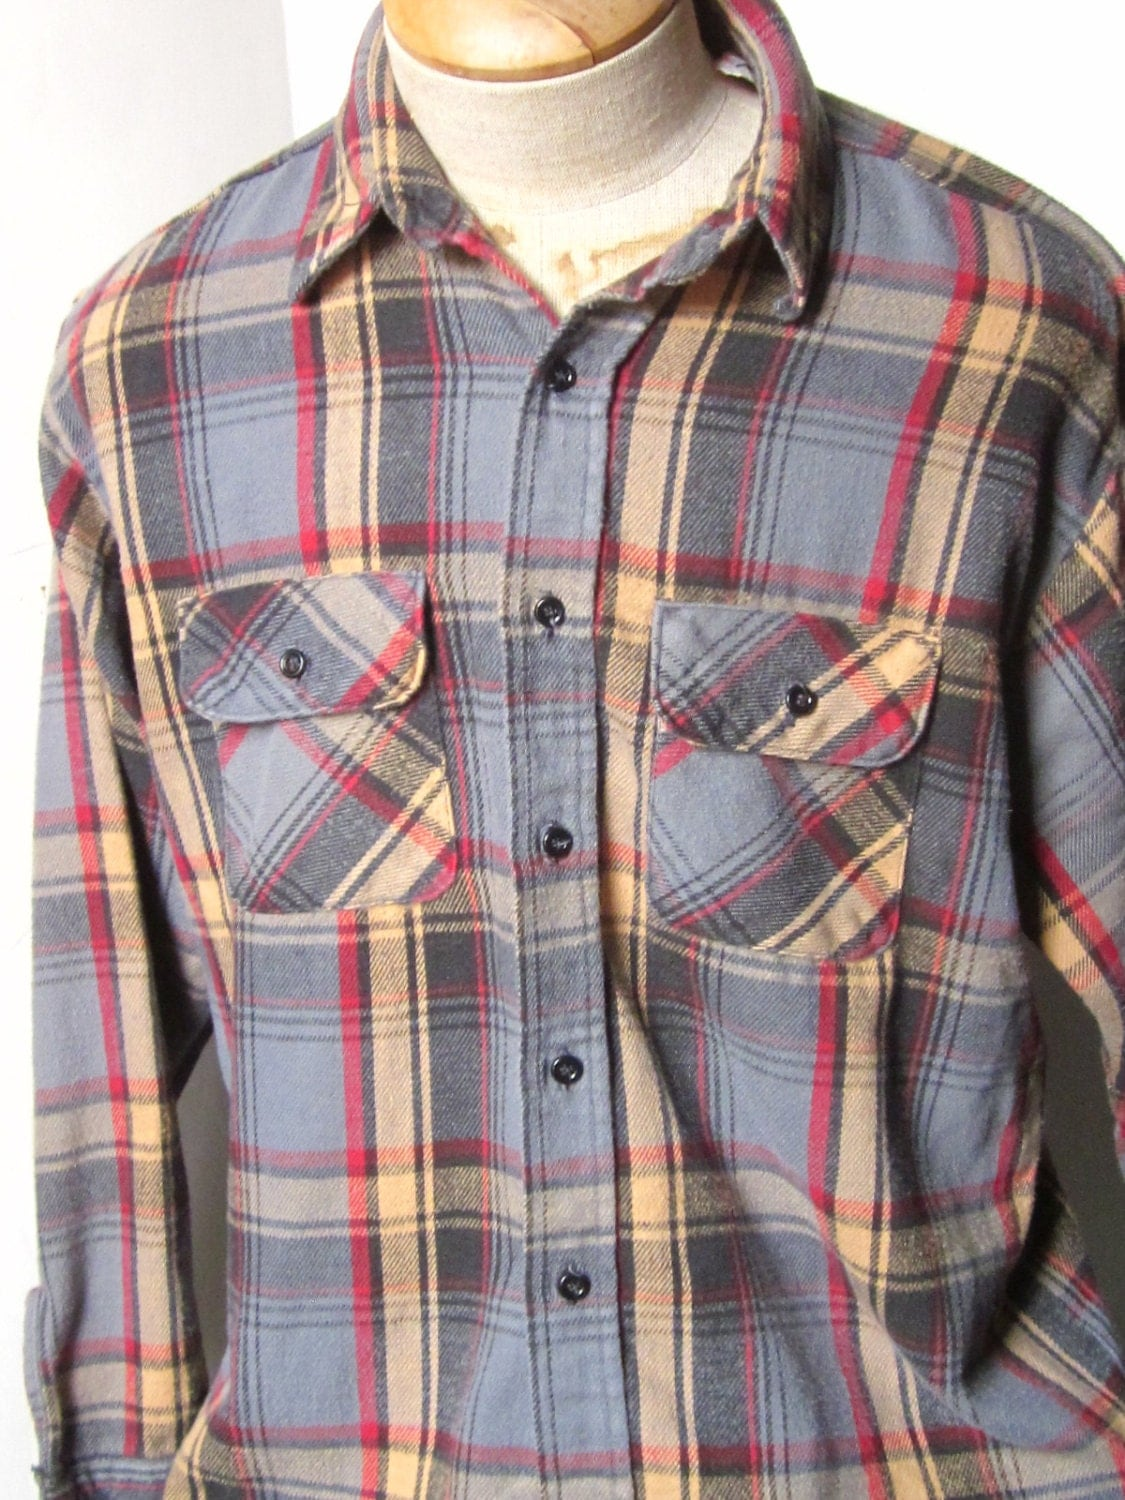 Flannel Work Shirt Vintage Five Brothers Heavy Flannel